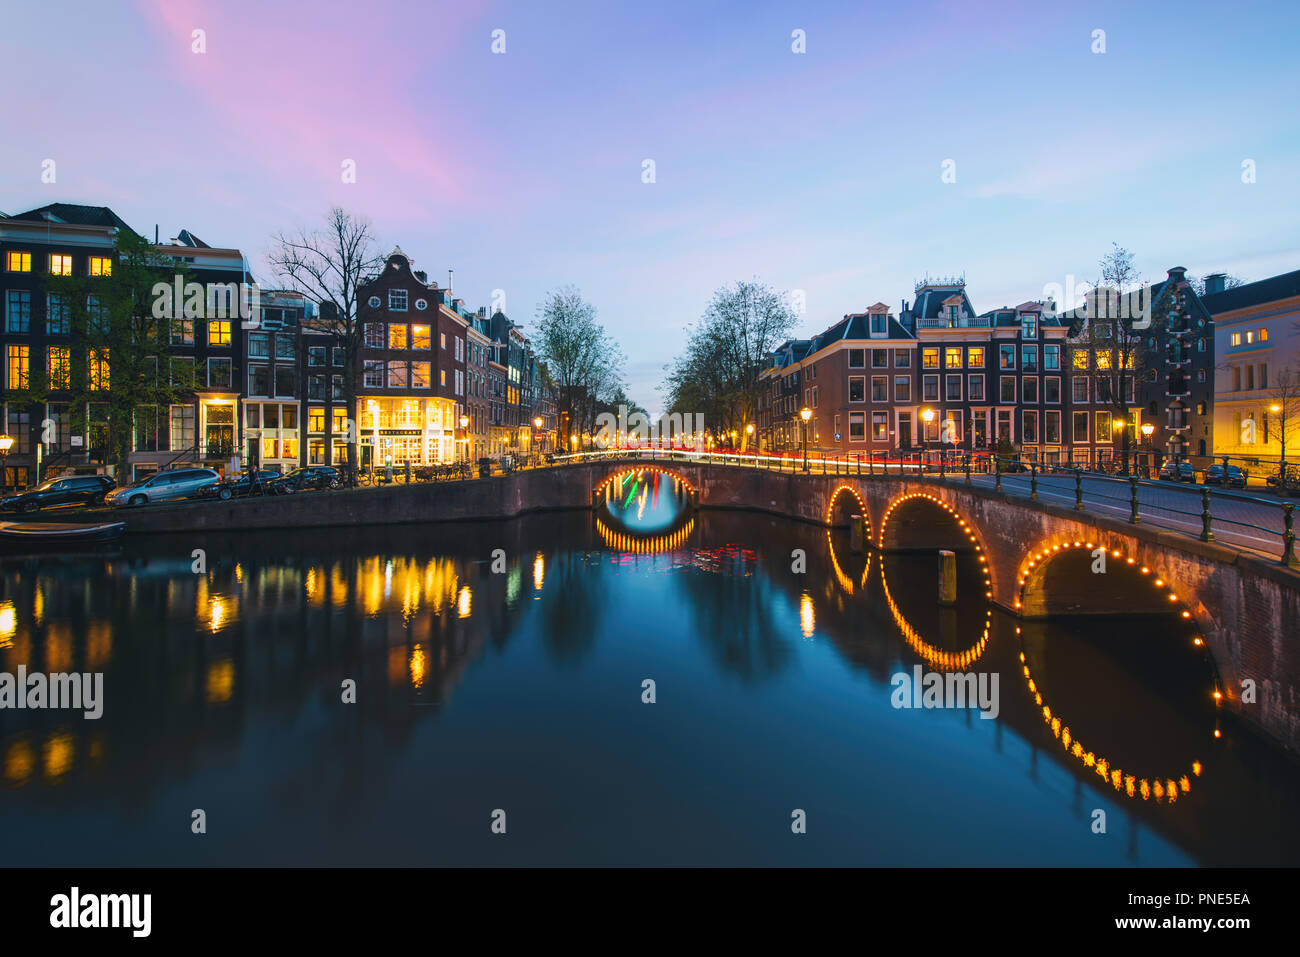 Night city view in Amsterdam, Netherlands. Canal and typical dutch houses at night in Amsterdam, Netherlands - Stock Image